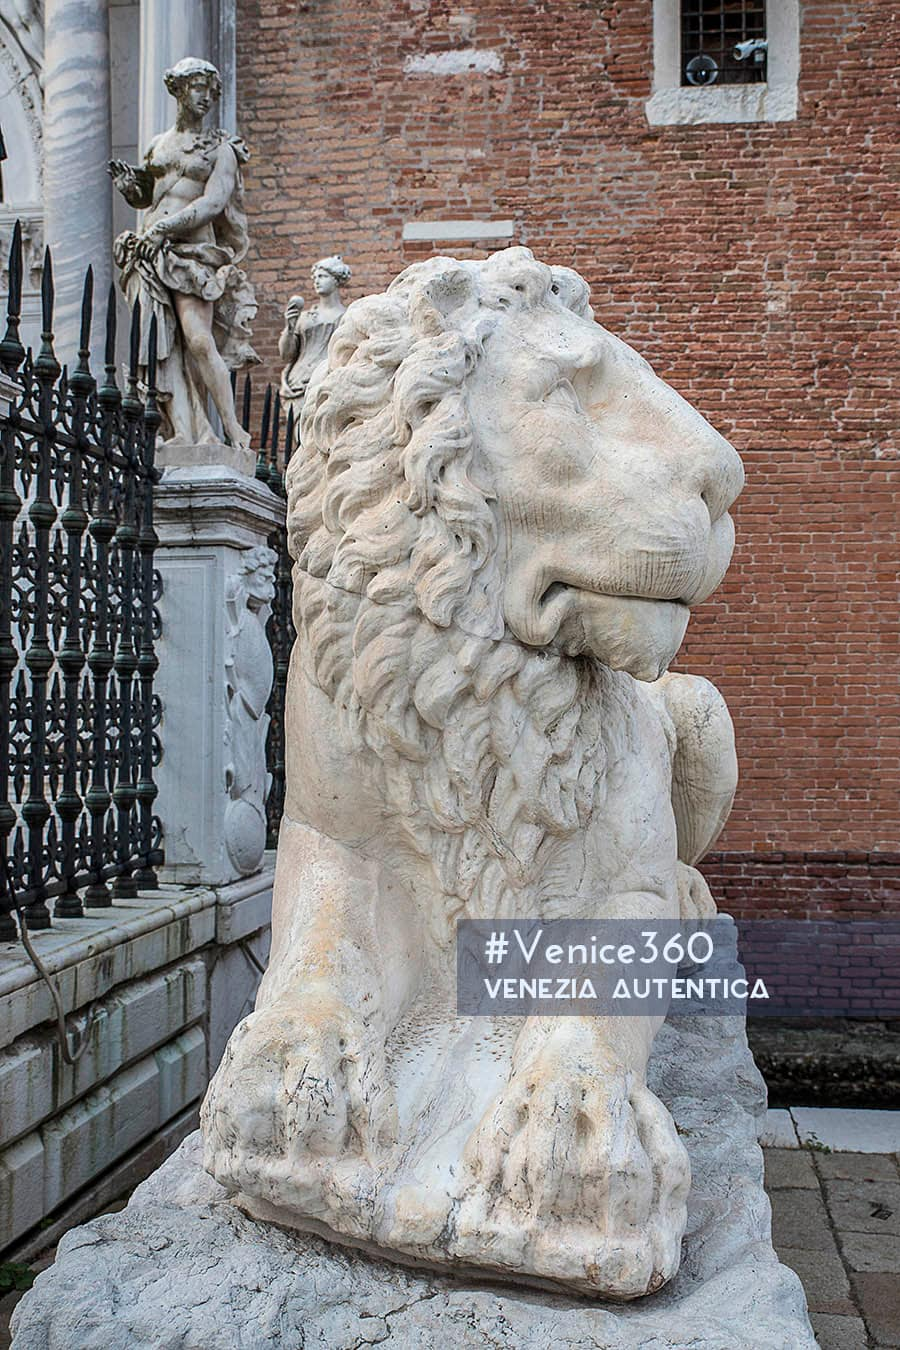 One of the 4 lions at the Arsenale in Venice.